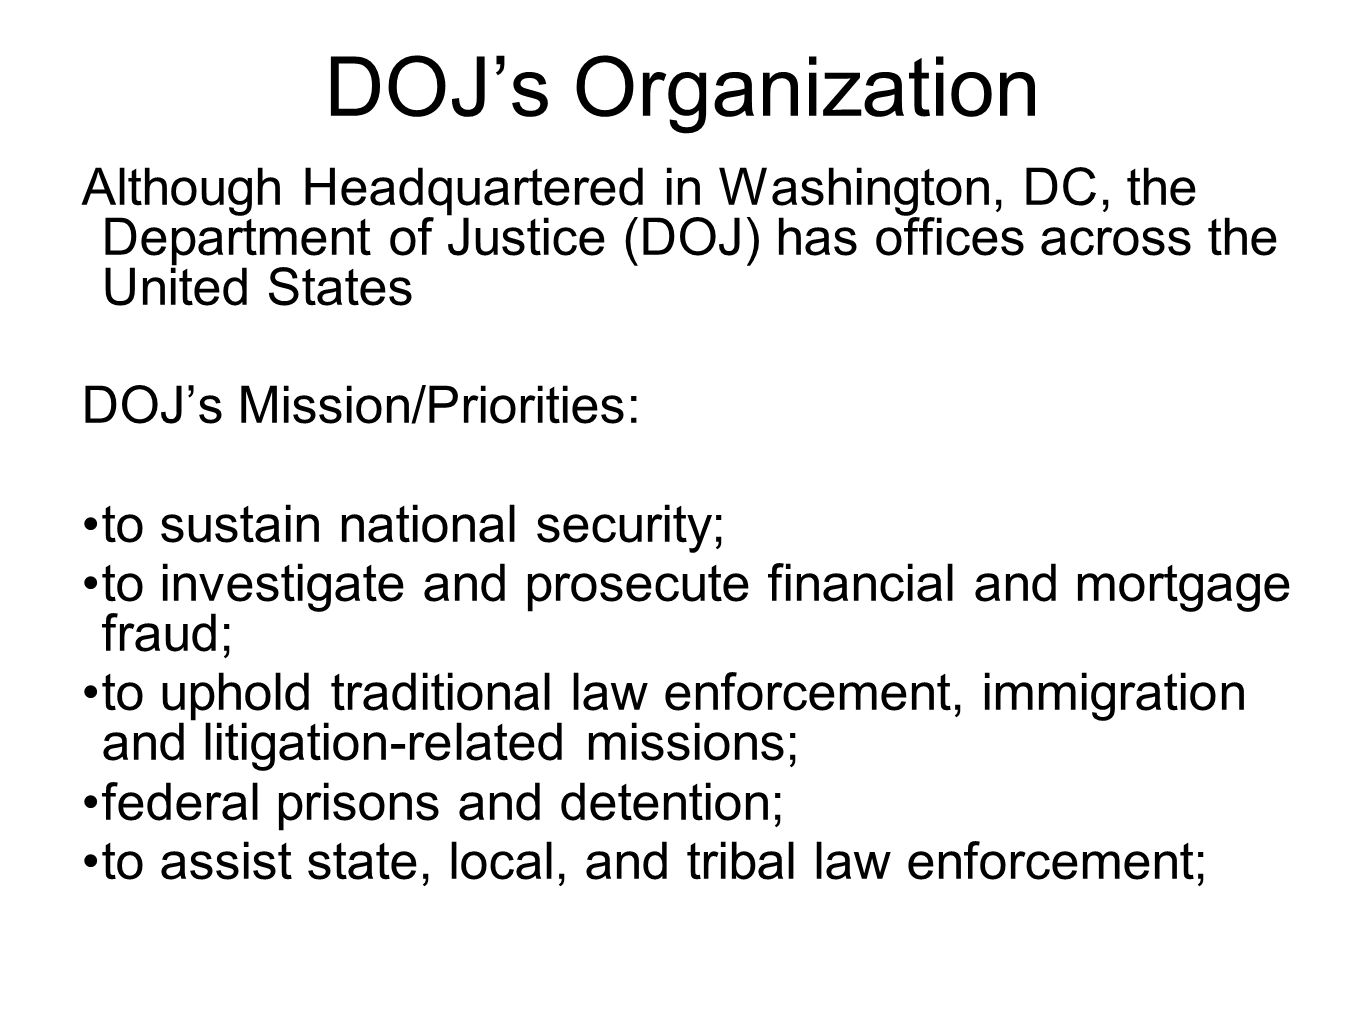 DOJ's Organization Although Headquartered in Washington, DC, the Department of Justice (DOJ) has offices across the United States DOJ's Mission/Priorities: to sustain national security; to investigate and prosecute financial and mortgage fraud; to uphold traditional law enforcement, immigration and litigation-related missions; federal prisons and detention; to assist state, local, and tribal law enforcement;